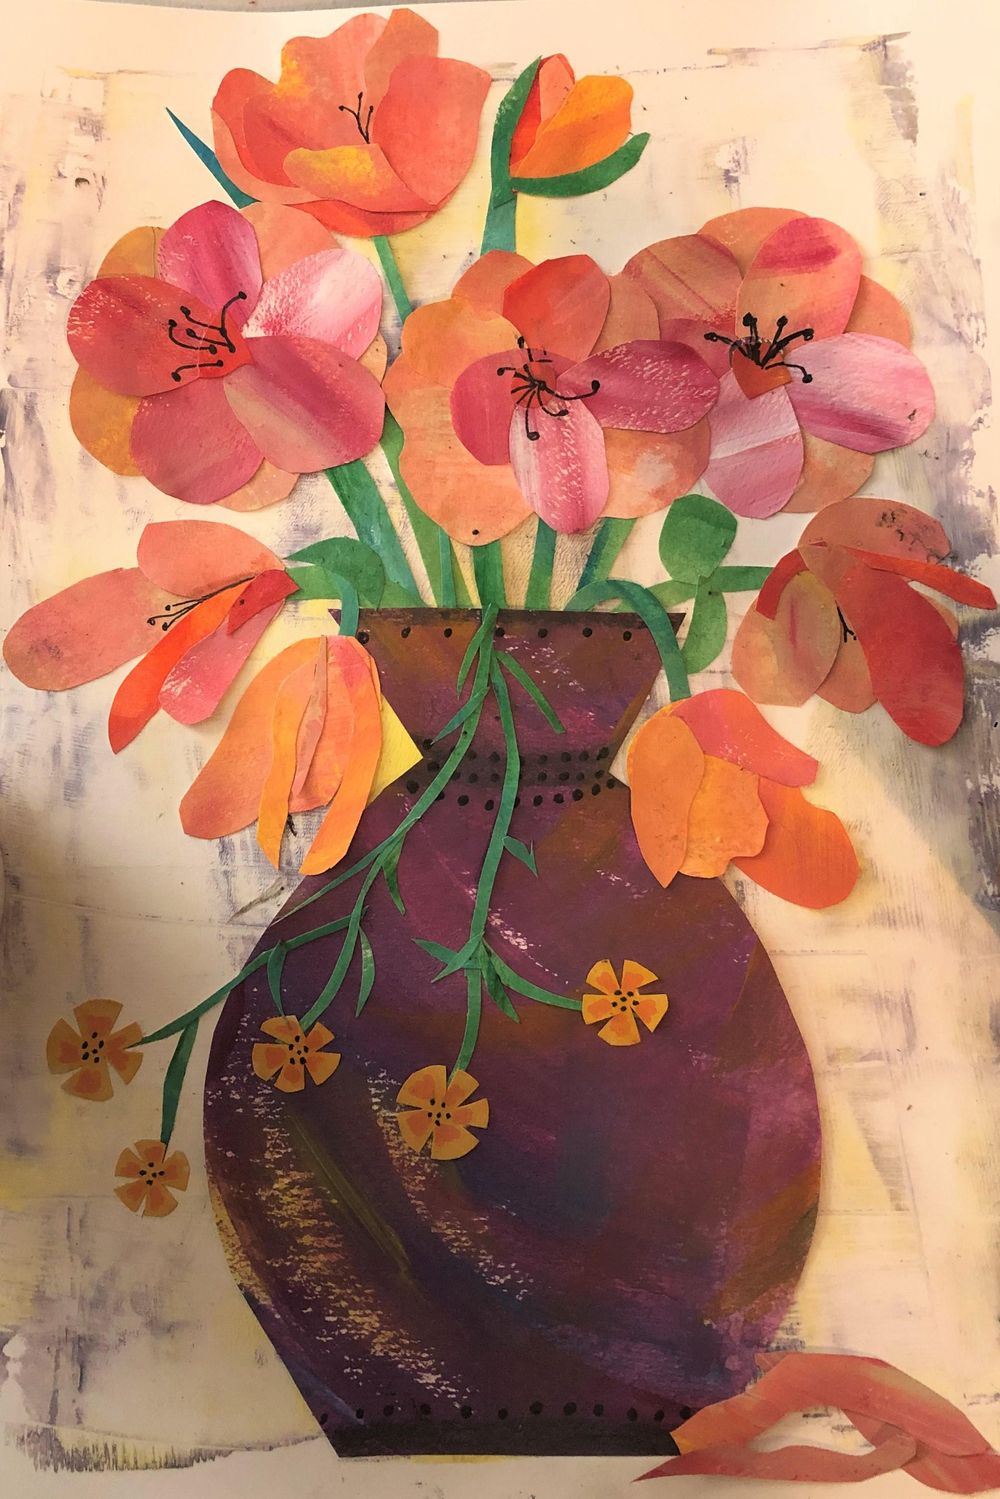 painted paper flowers - image 1 - student project